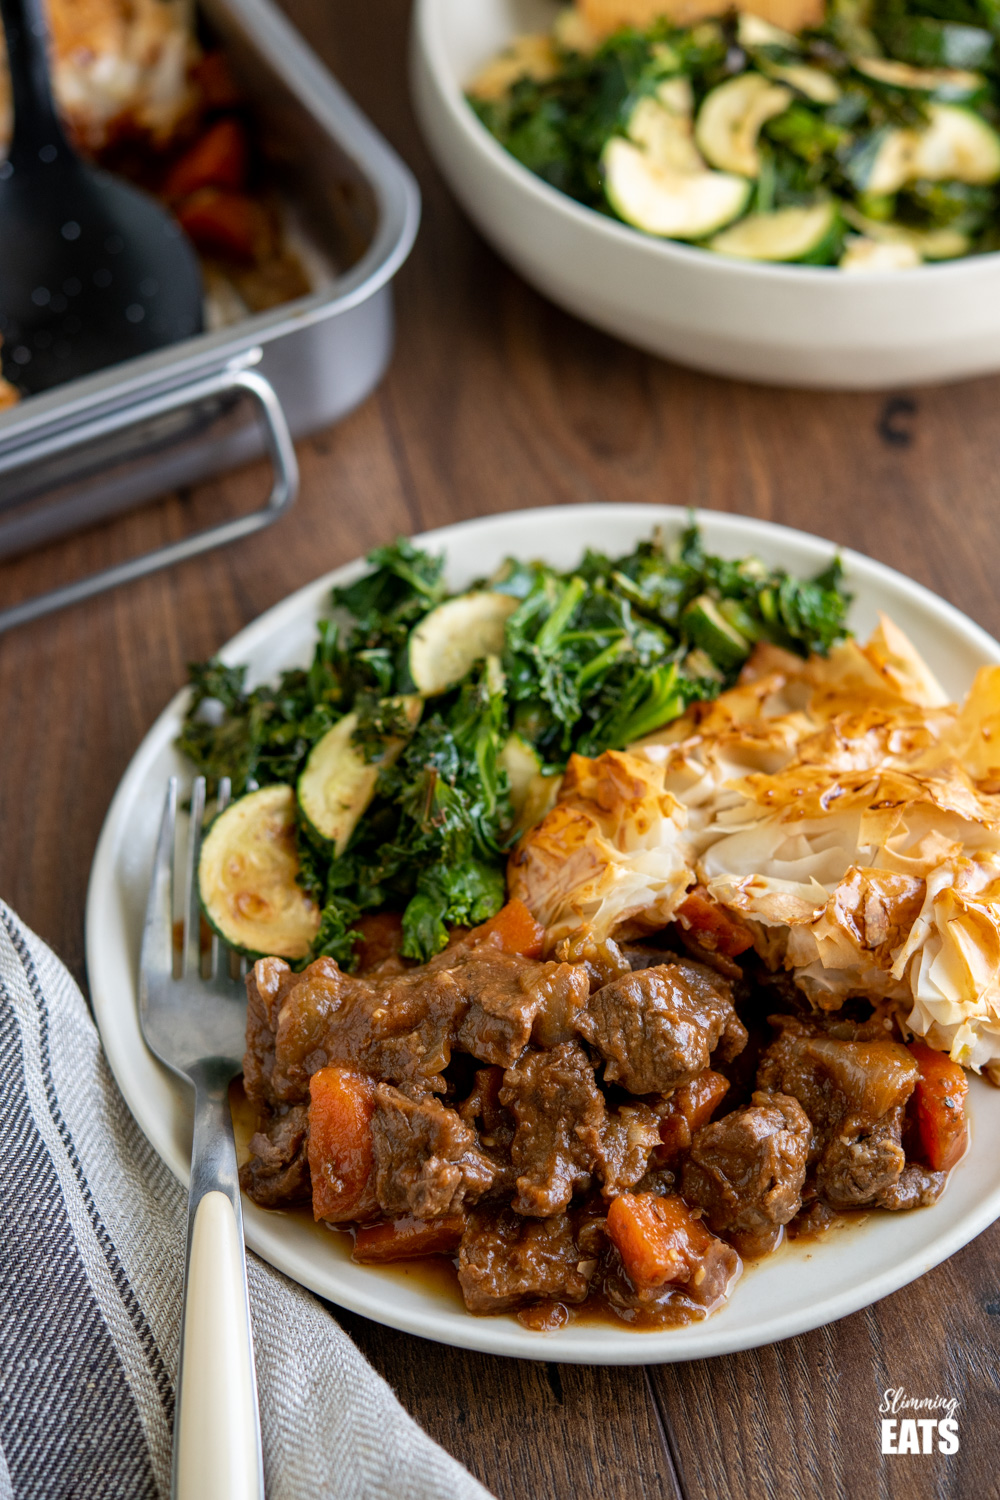 Steak and Vegetable Pie on plate with zucchini and kale